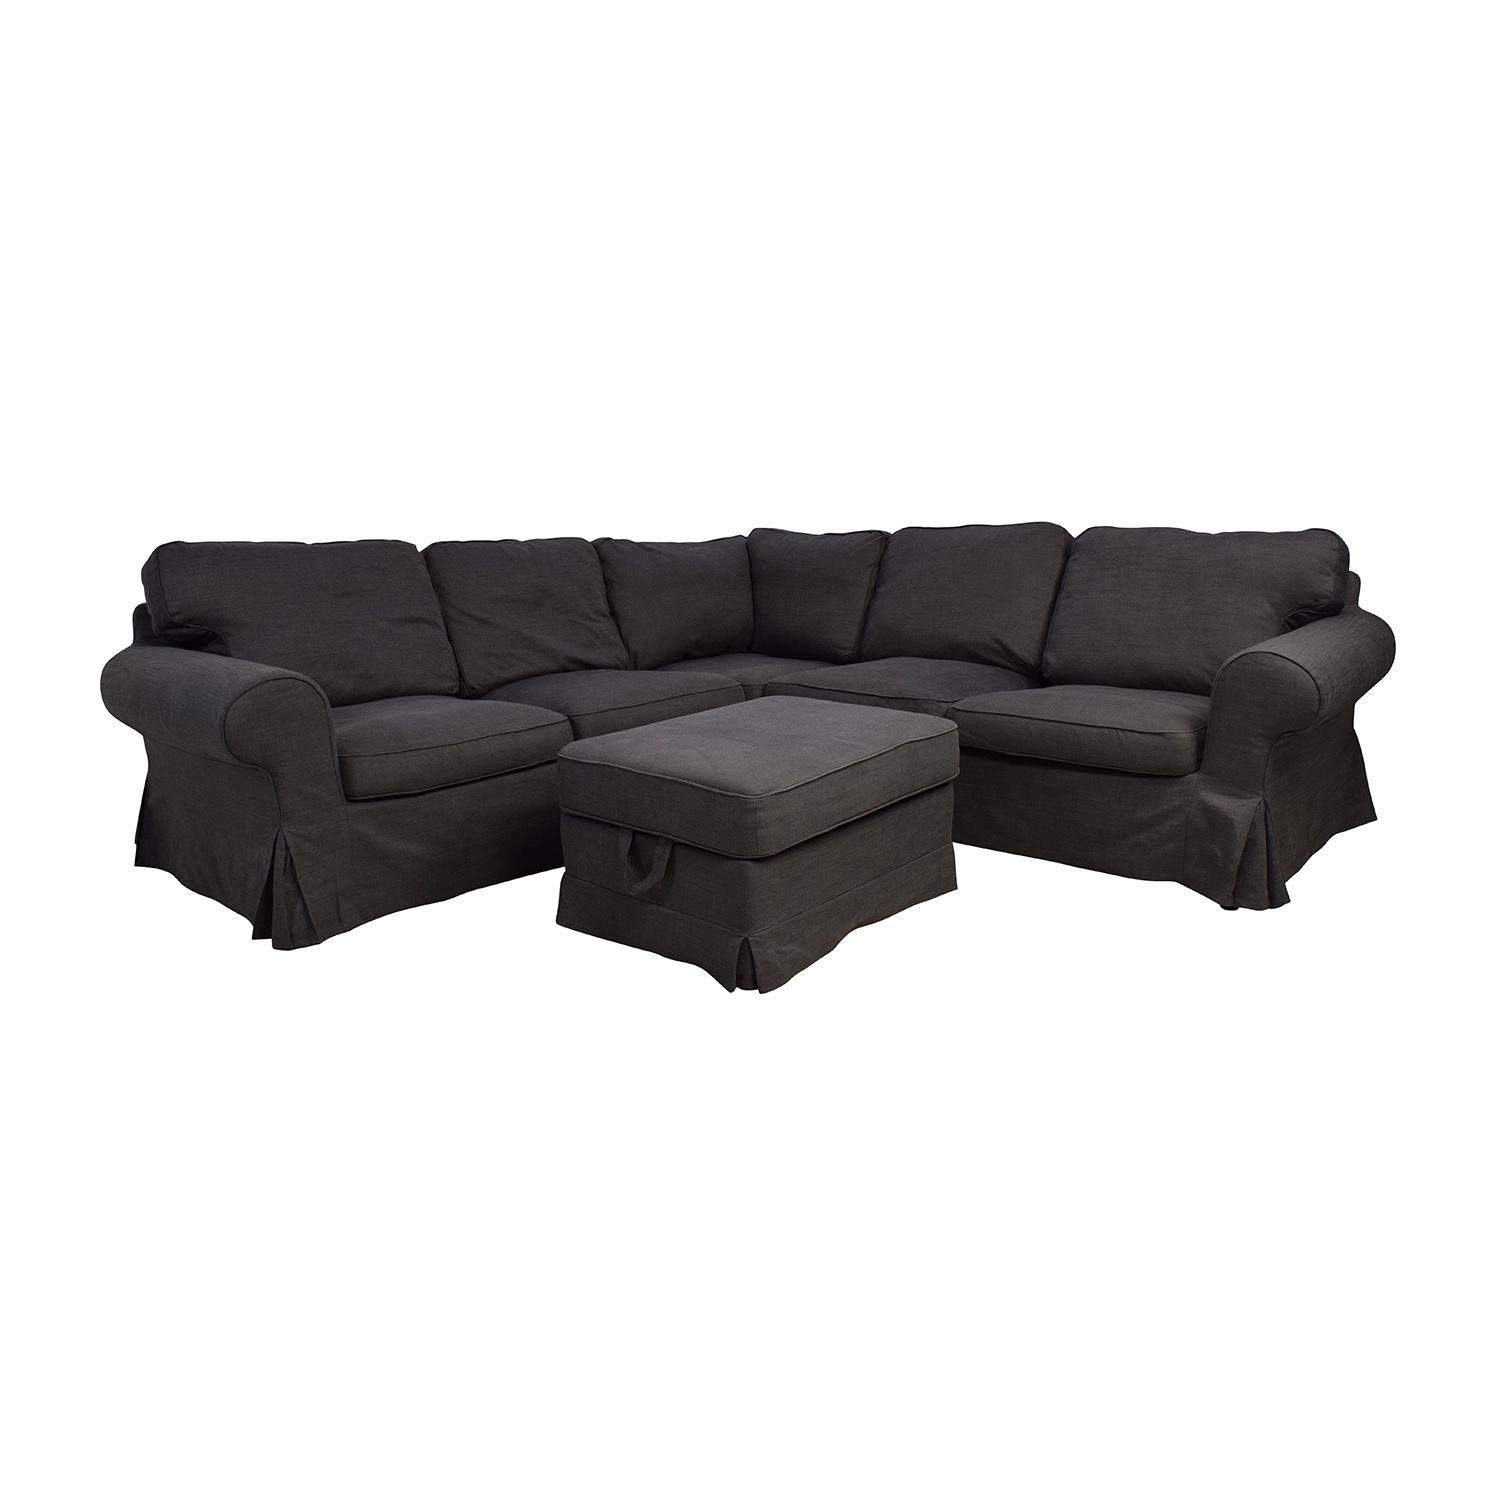 39% Off – Ikea Ikea Ektorp Gray Corner Sectional With Ottoman / Sofas Within Used Sectionals (Image 2 of 20)